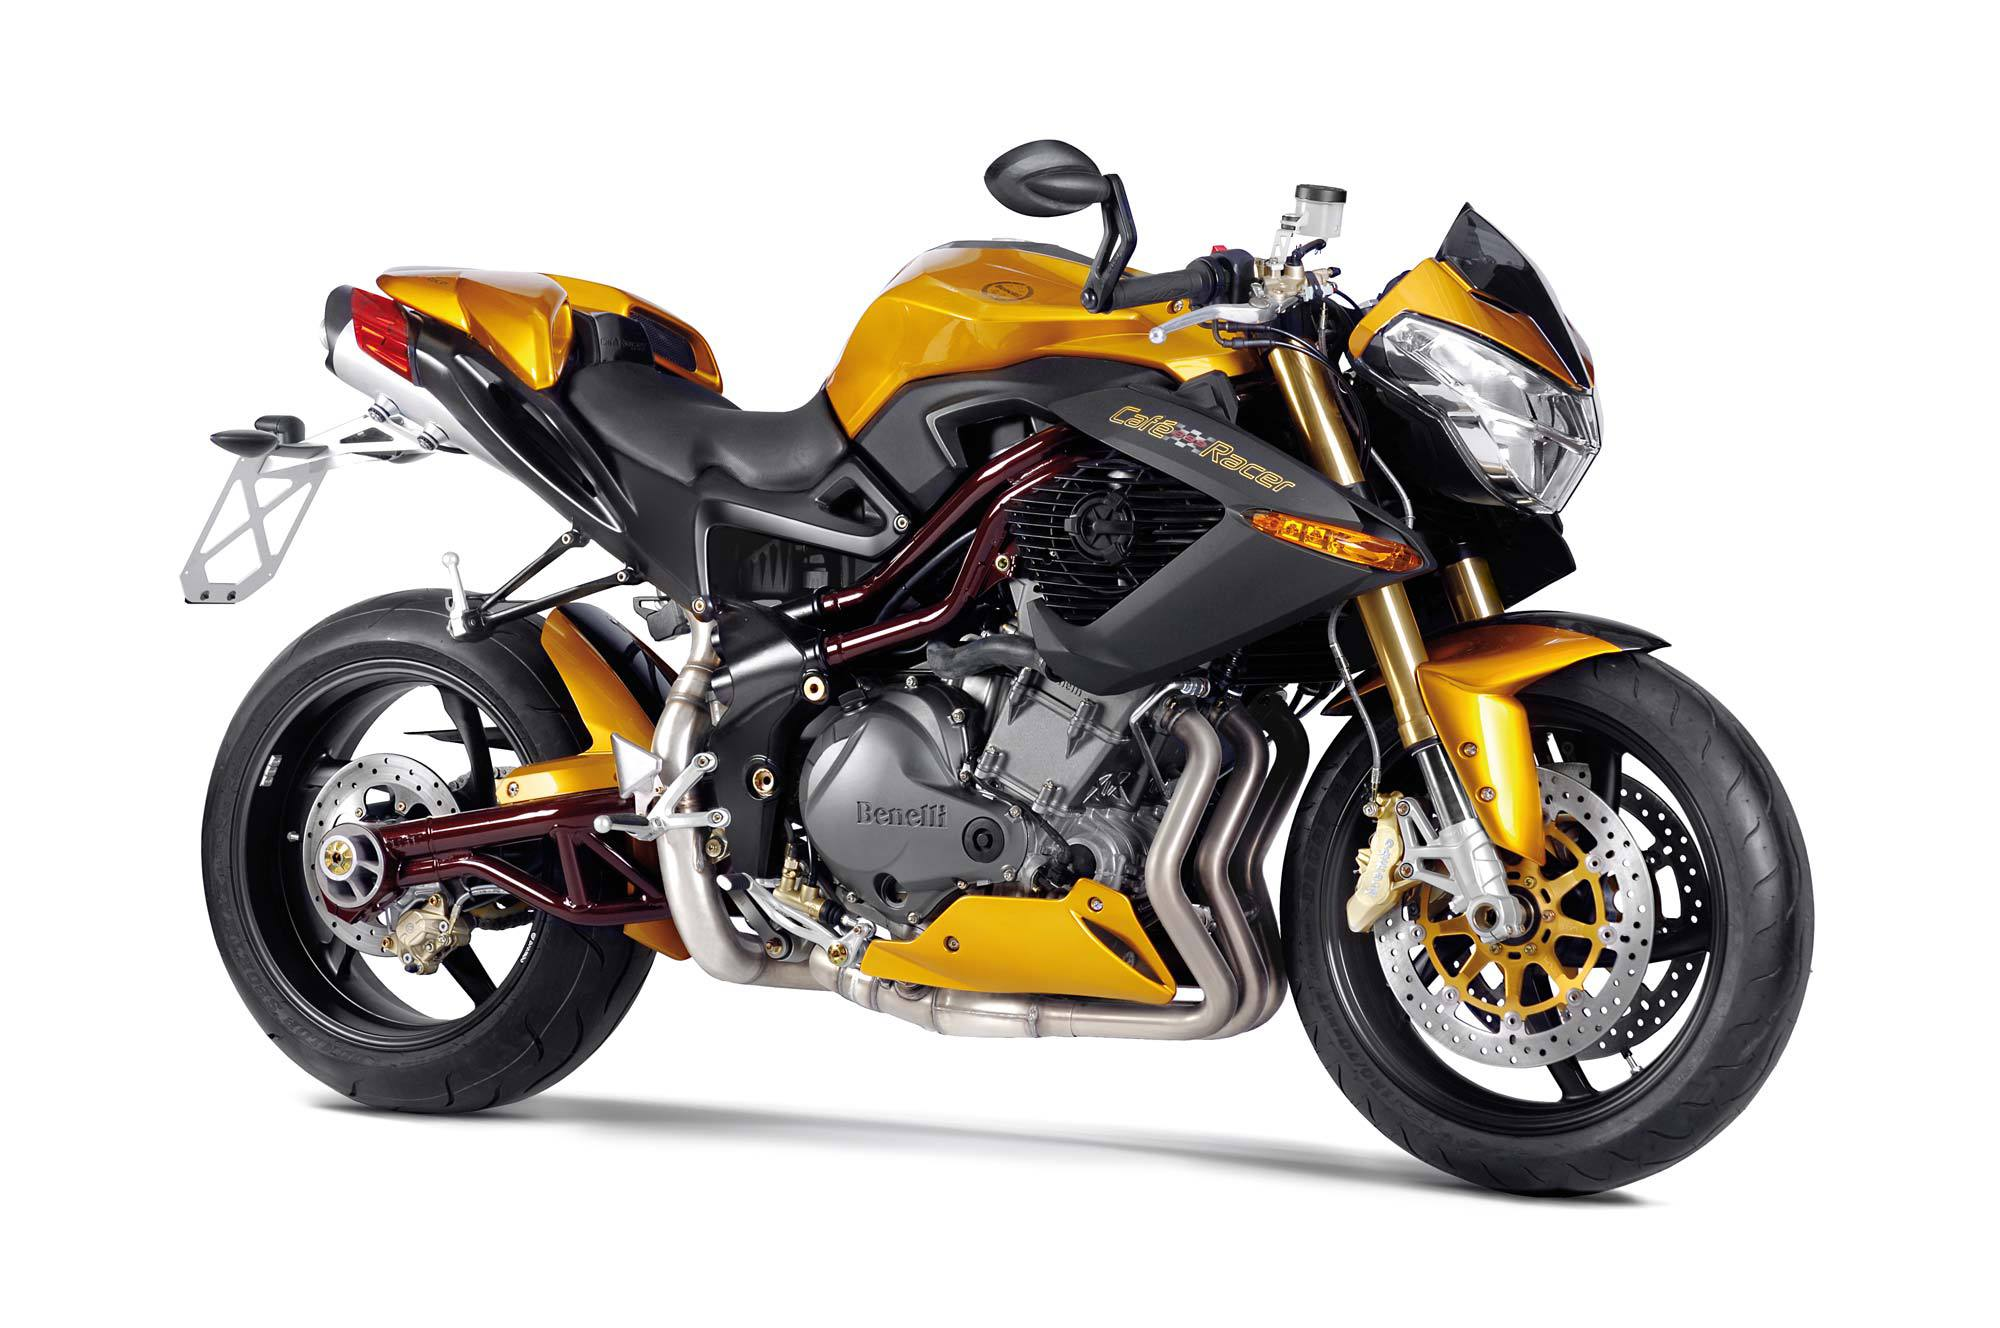 DSK Benelli official launch in March '15